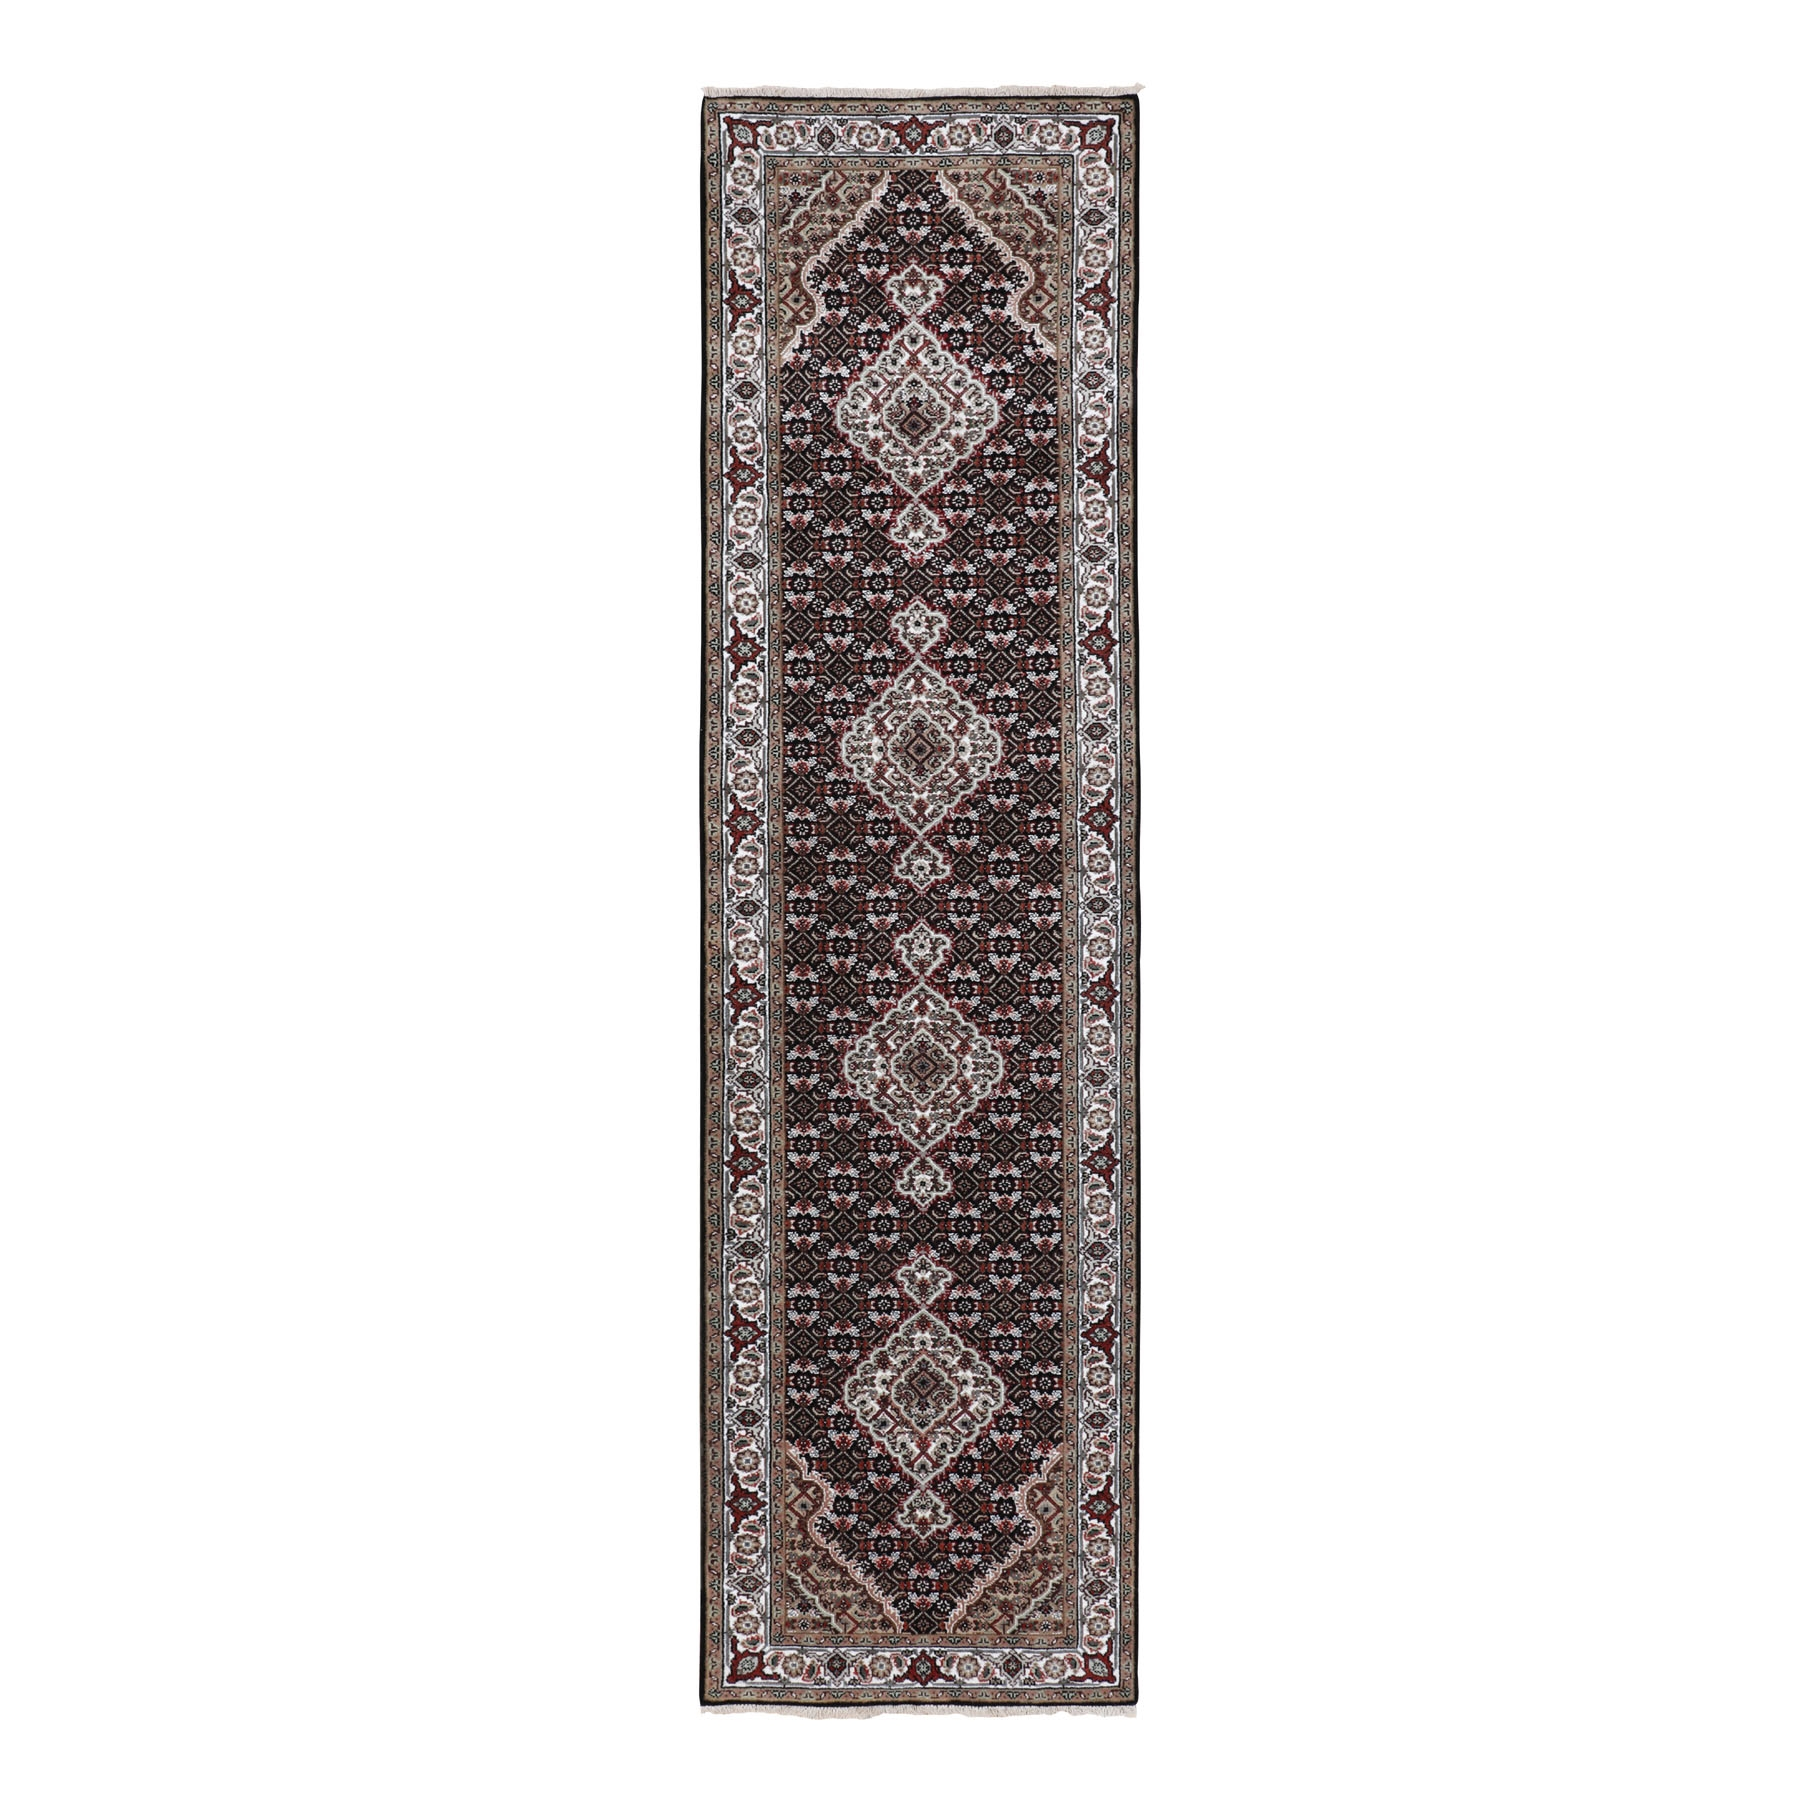 Pirniakan Collection Hand Knotted Black Rug No: 01116596